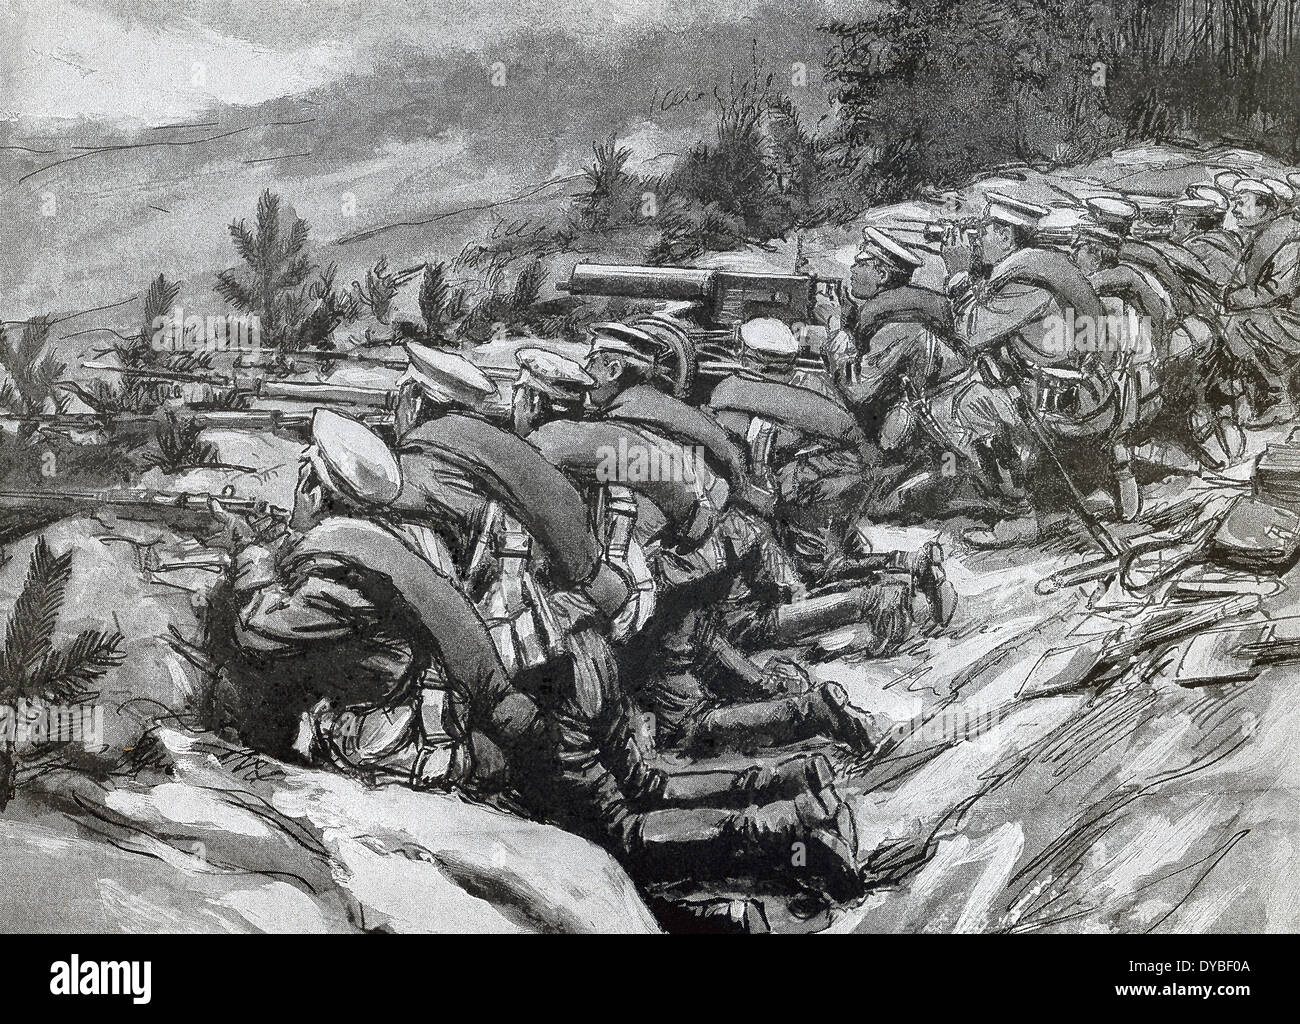 This contemporary illustration shows Russian soldiers in trenches awaiting attack by Austrian troops during World War I. - Stock Image